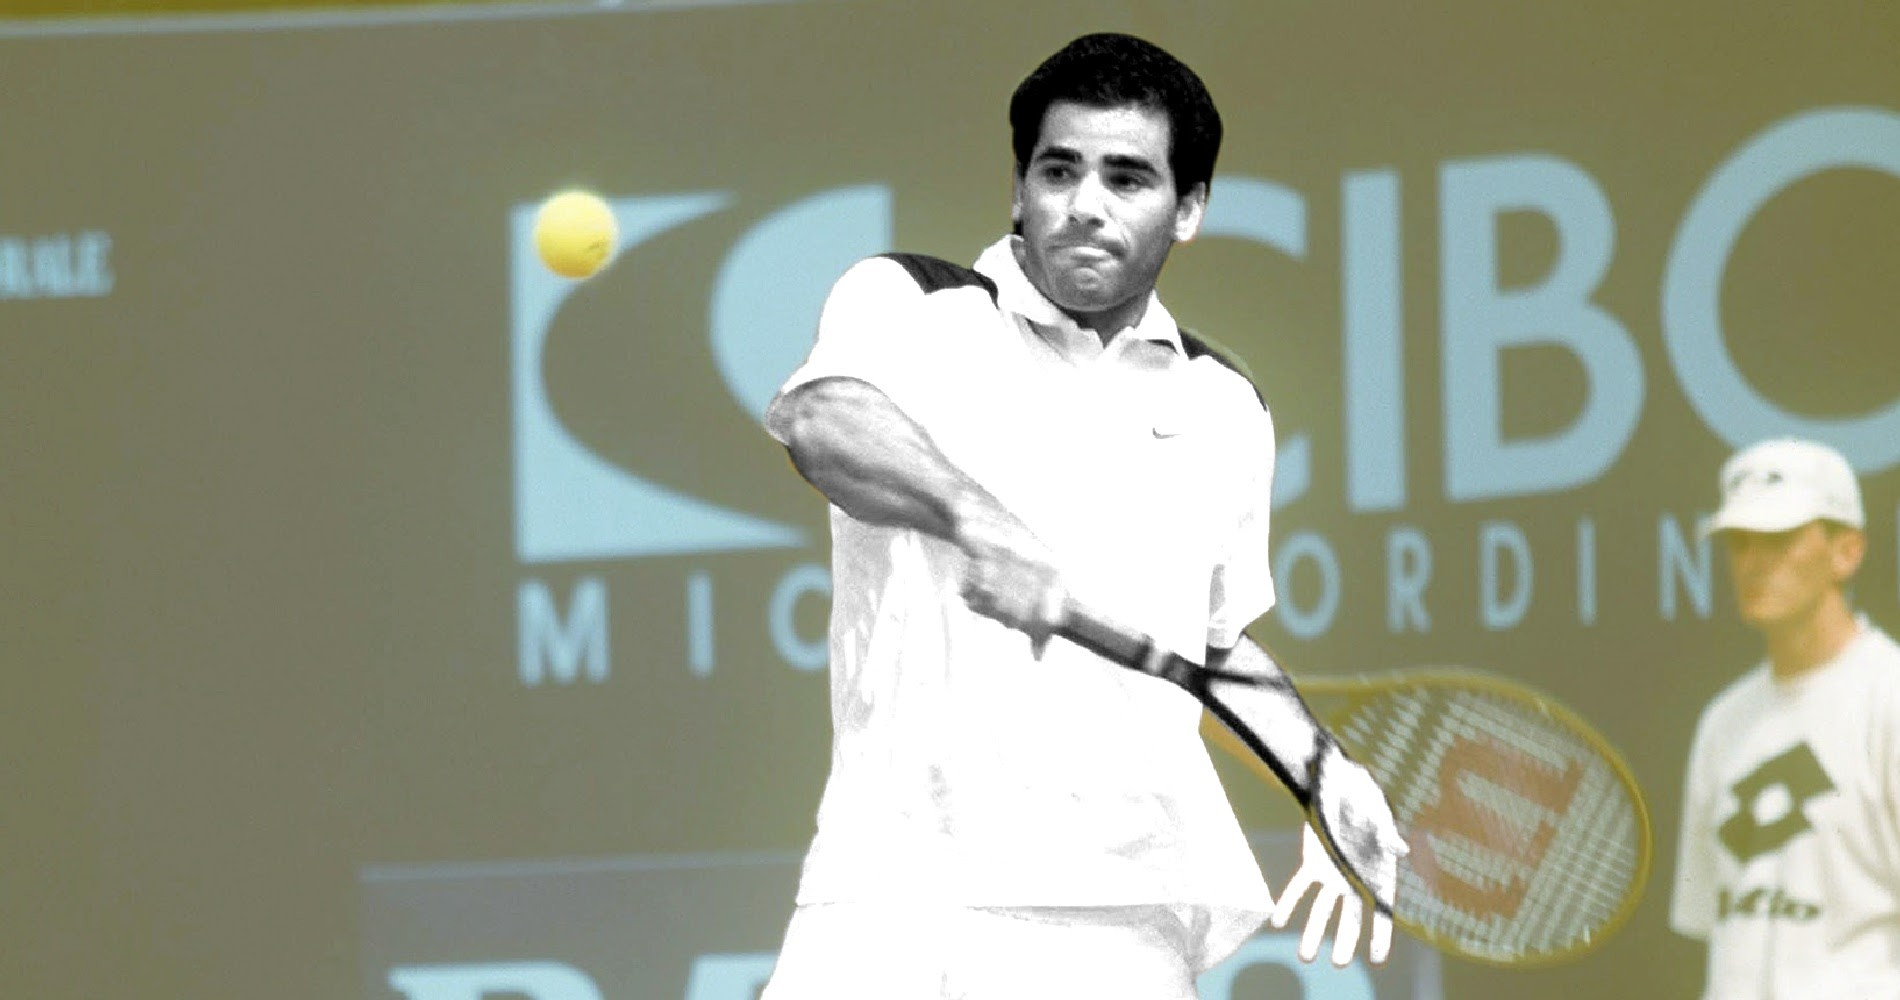 Pete Sampras On this day 21.04.2021